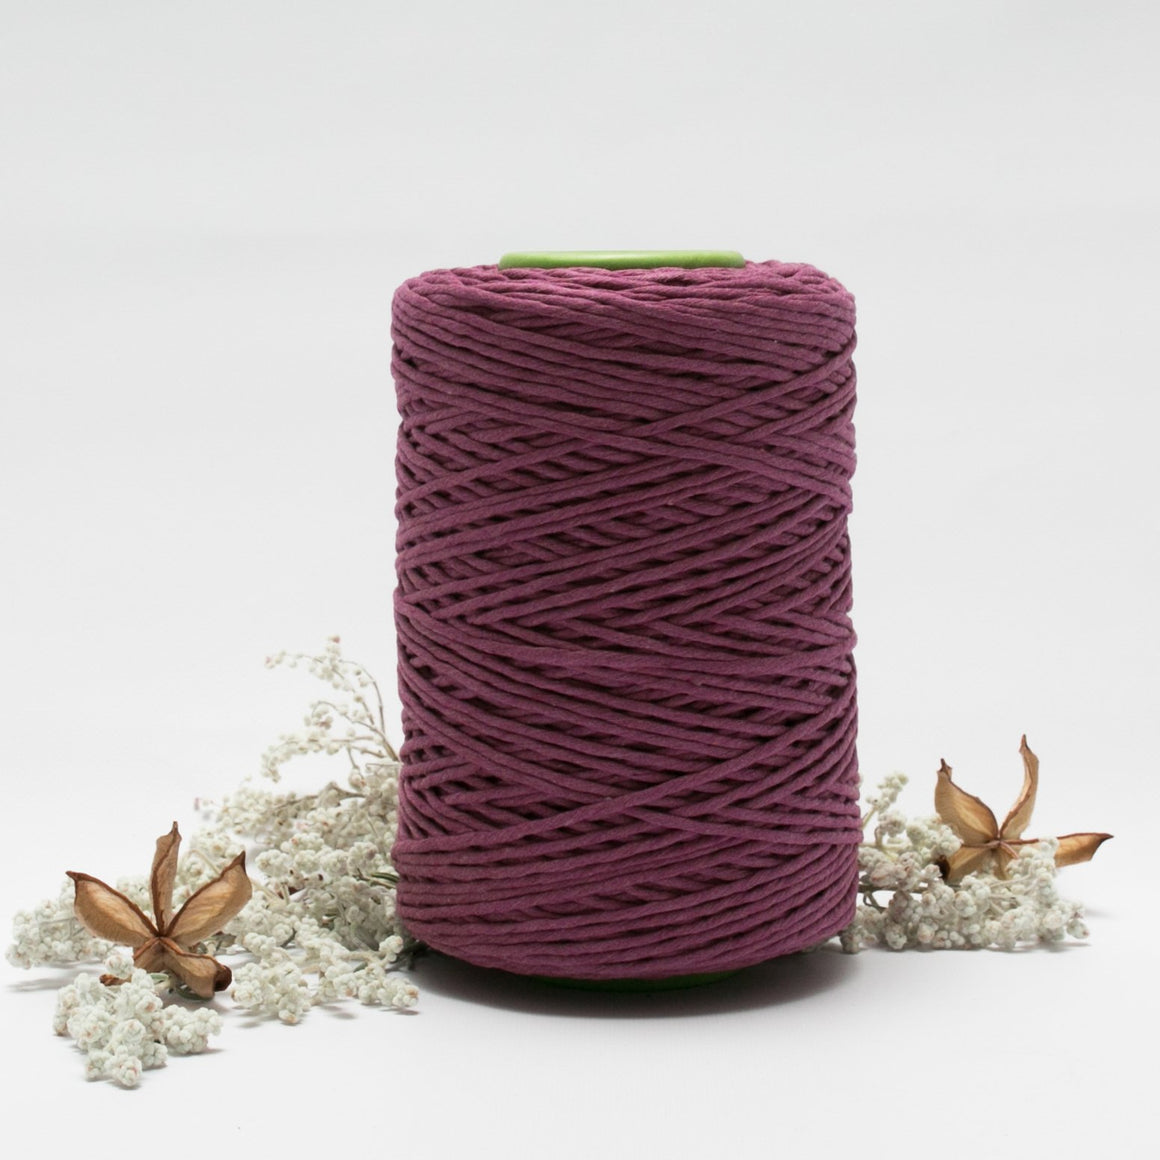 Berry // Macrame Cotton String - Luxe Colour Cotton - Mary Maker Studio - [macrame] - [weaving] - [macrame_art] - [macrame_rope] - [macrame_cord] - [macrame_workshops] - [macrame_string] - [learn-_to_macrame] - [macrame_patterns]